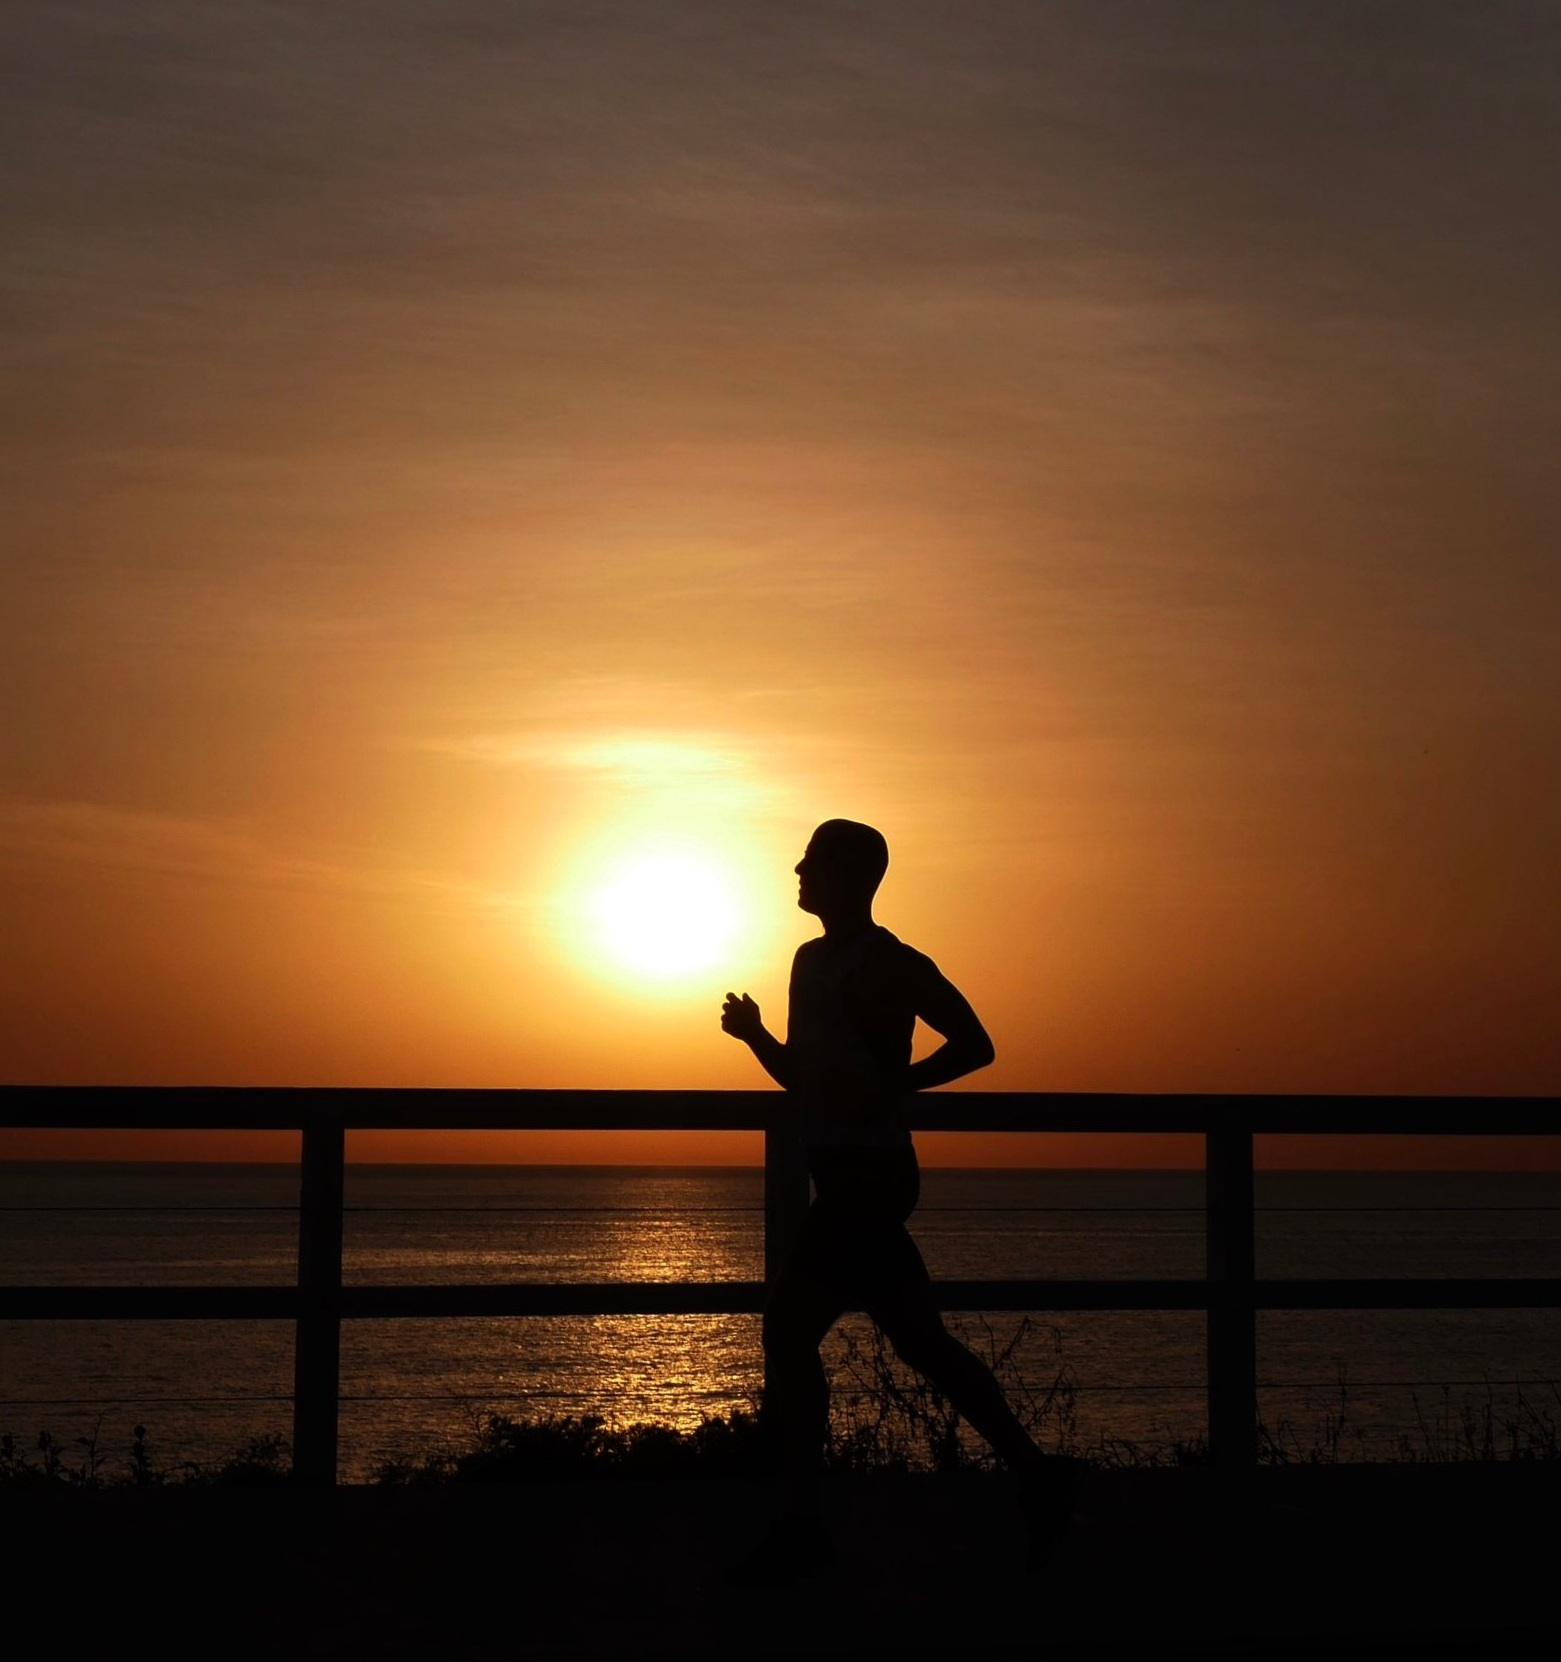 Join our FREE Intro Run 6:30am Sunday, January 6 at North Bondi Surf Club meeting from 6:15am!